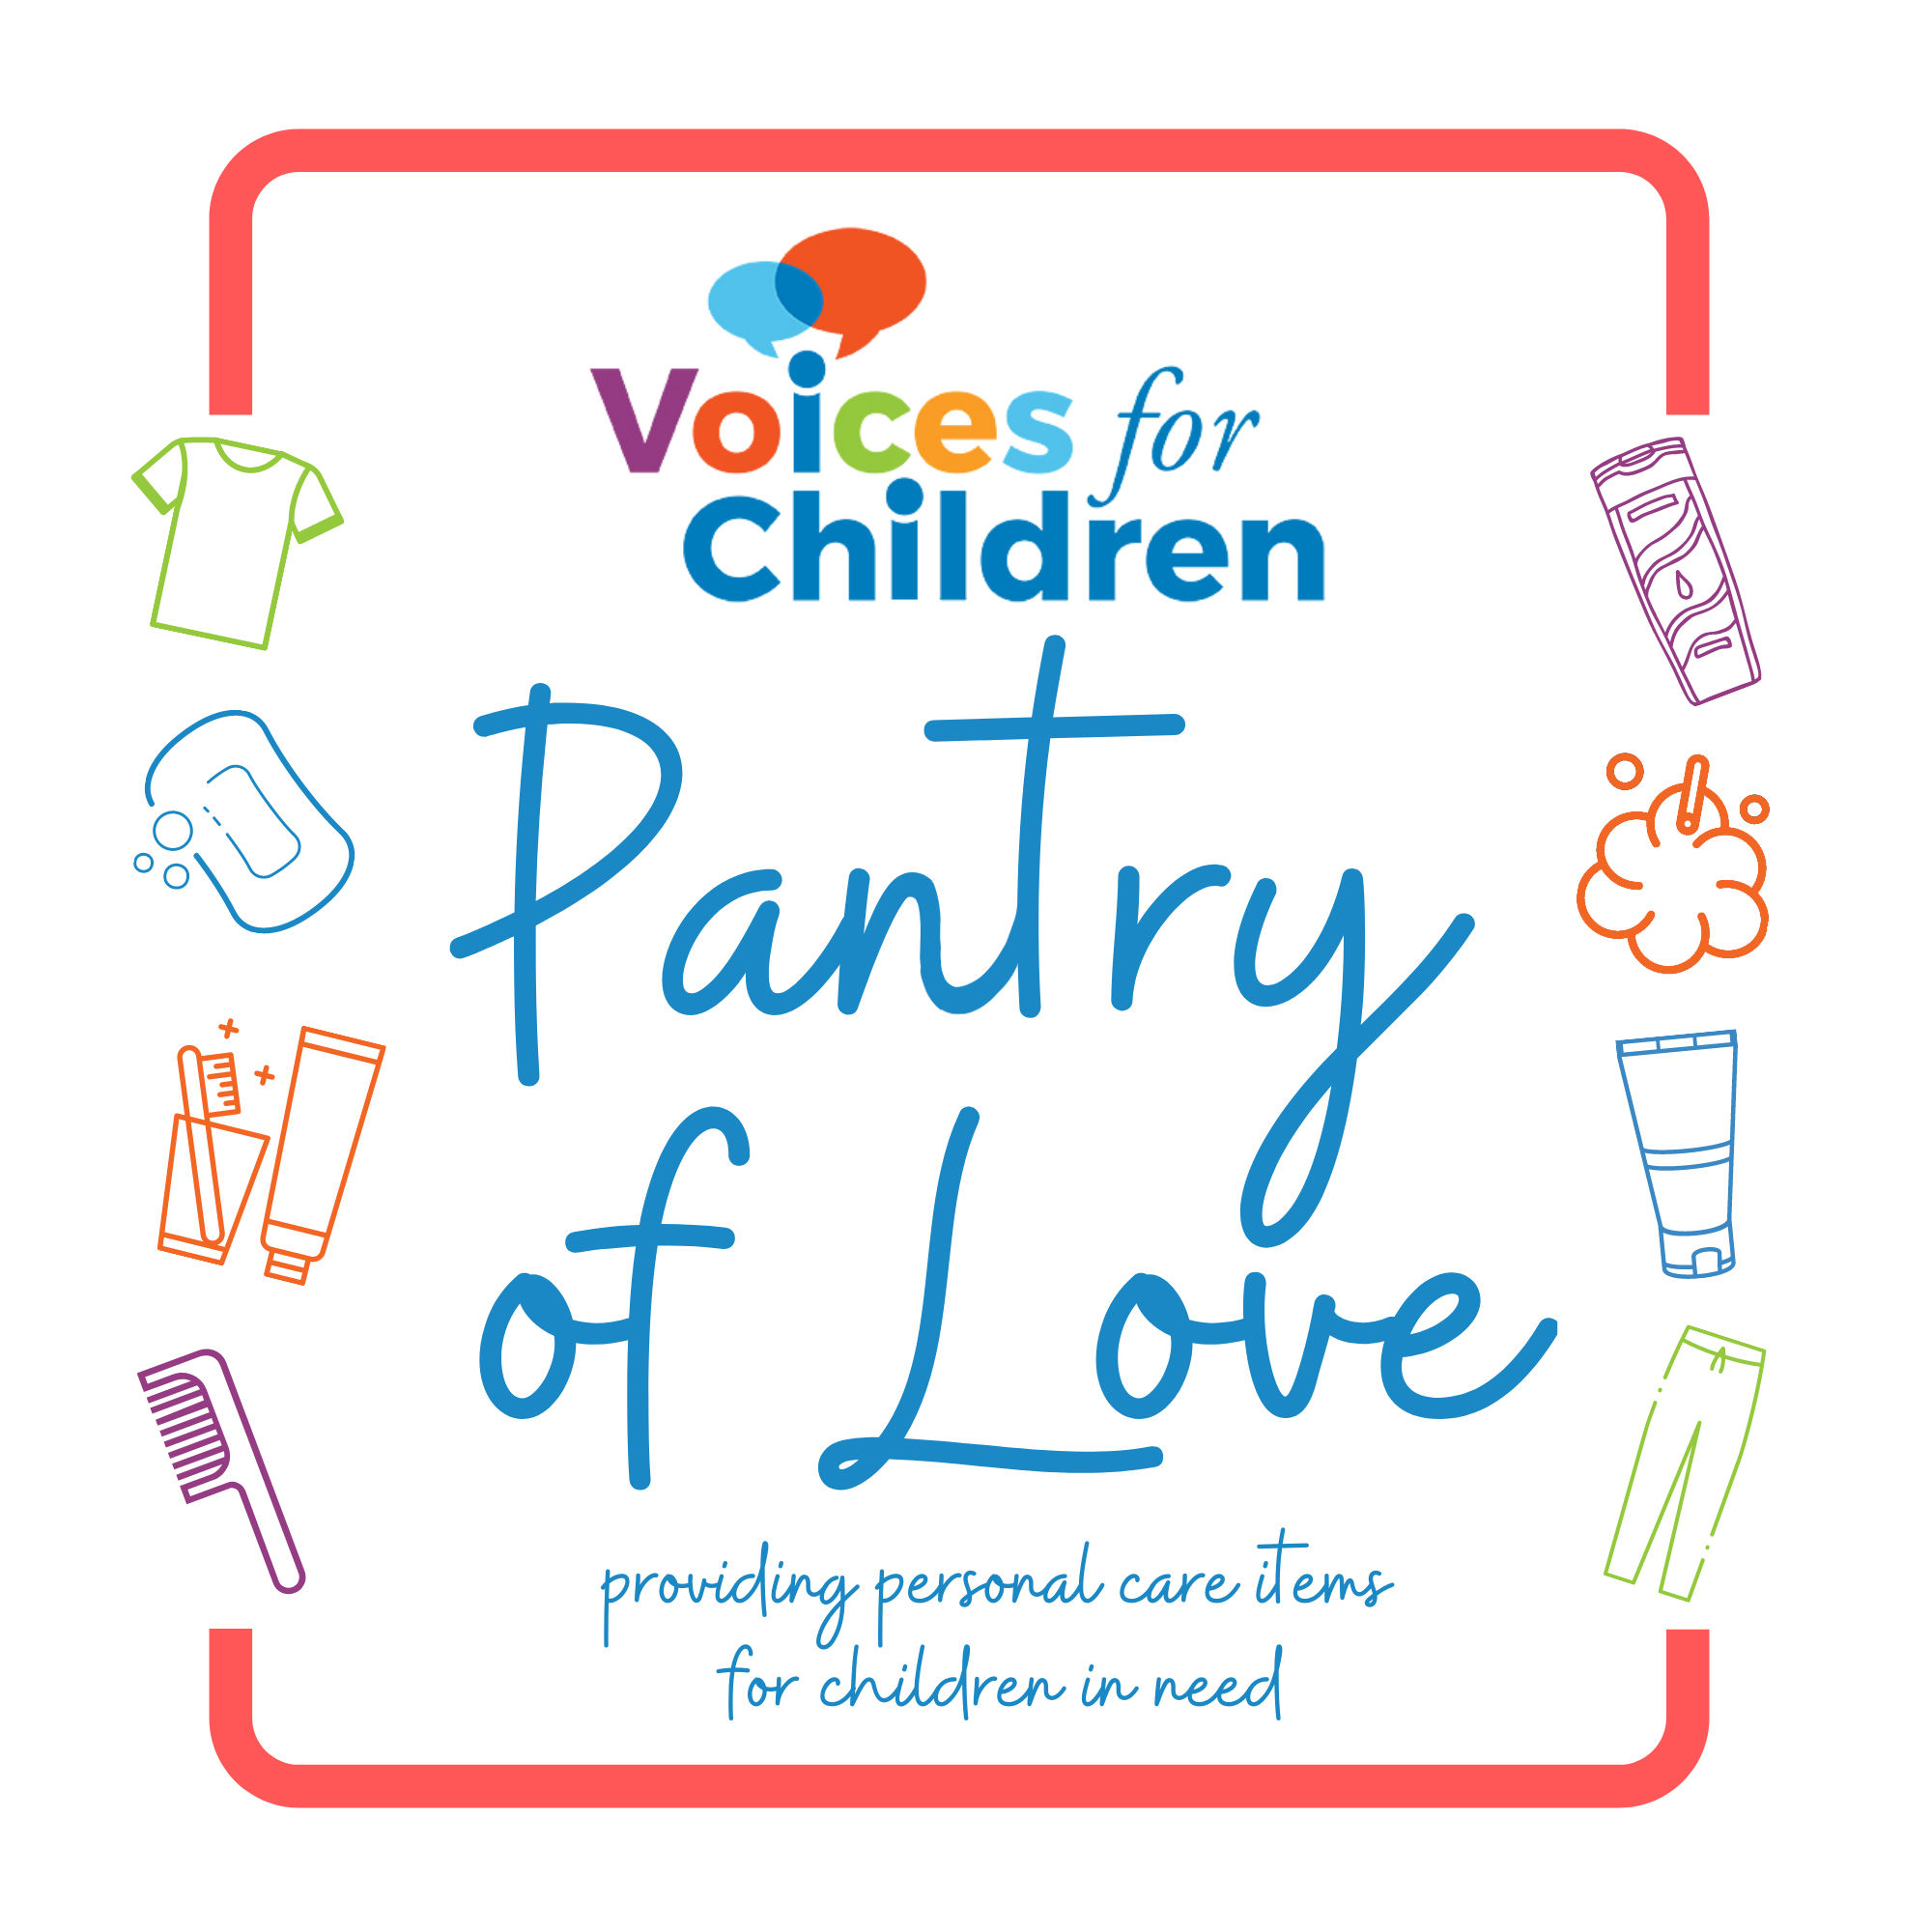 Pantry of Love: providing personal care items for children in need